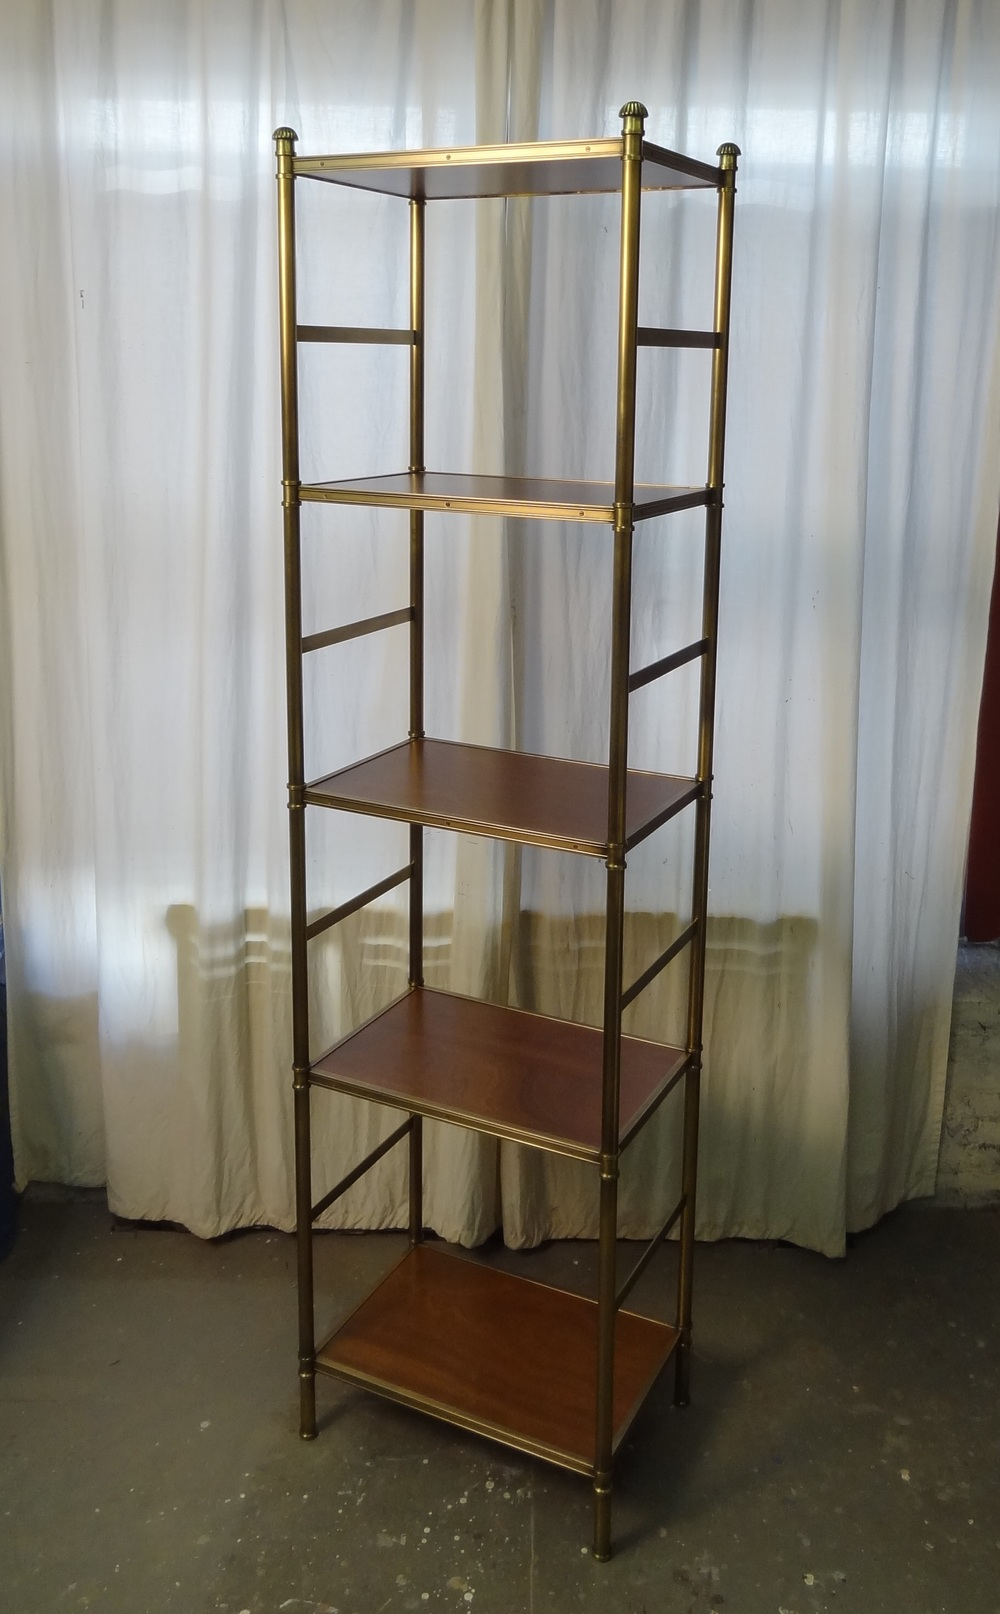 A narrow Cole Porter etagere by Victoria & Son